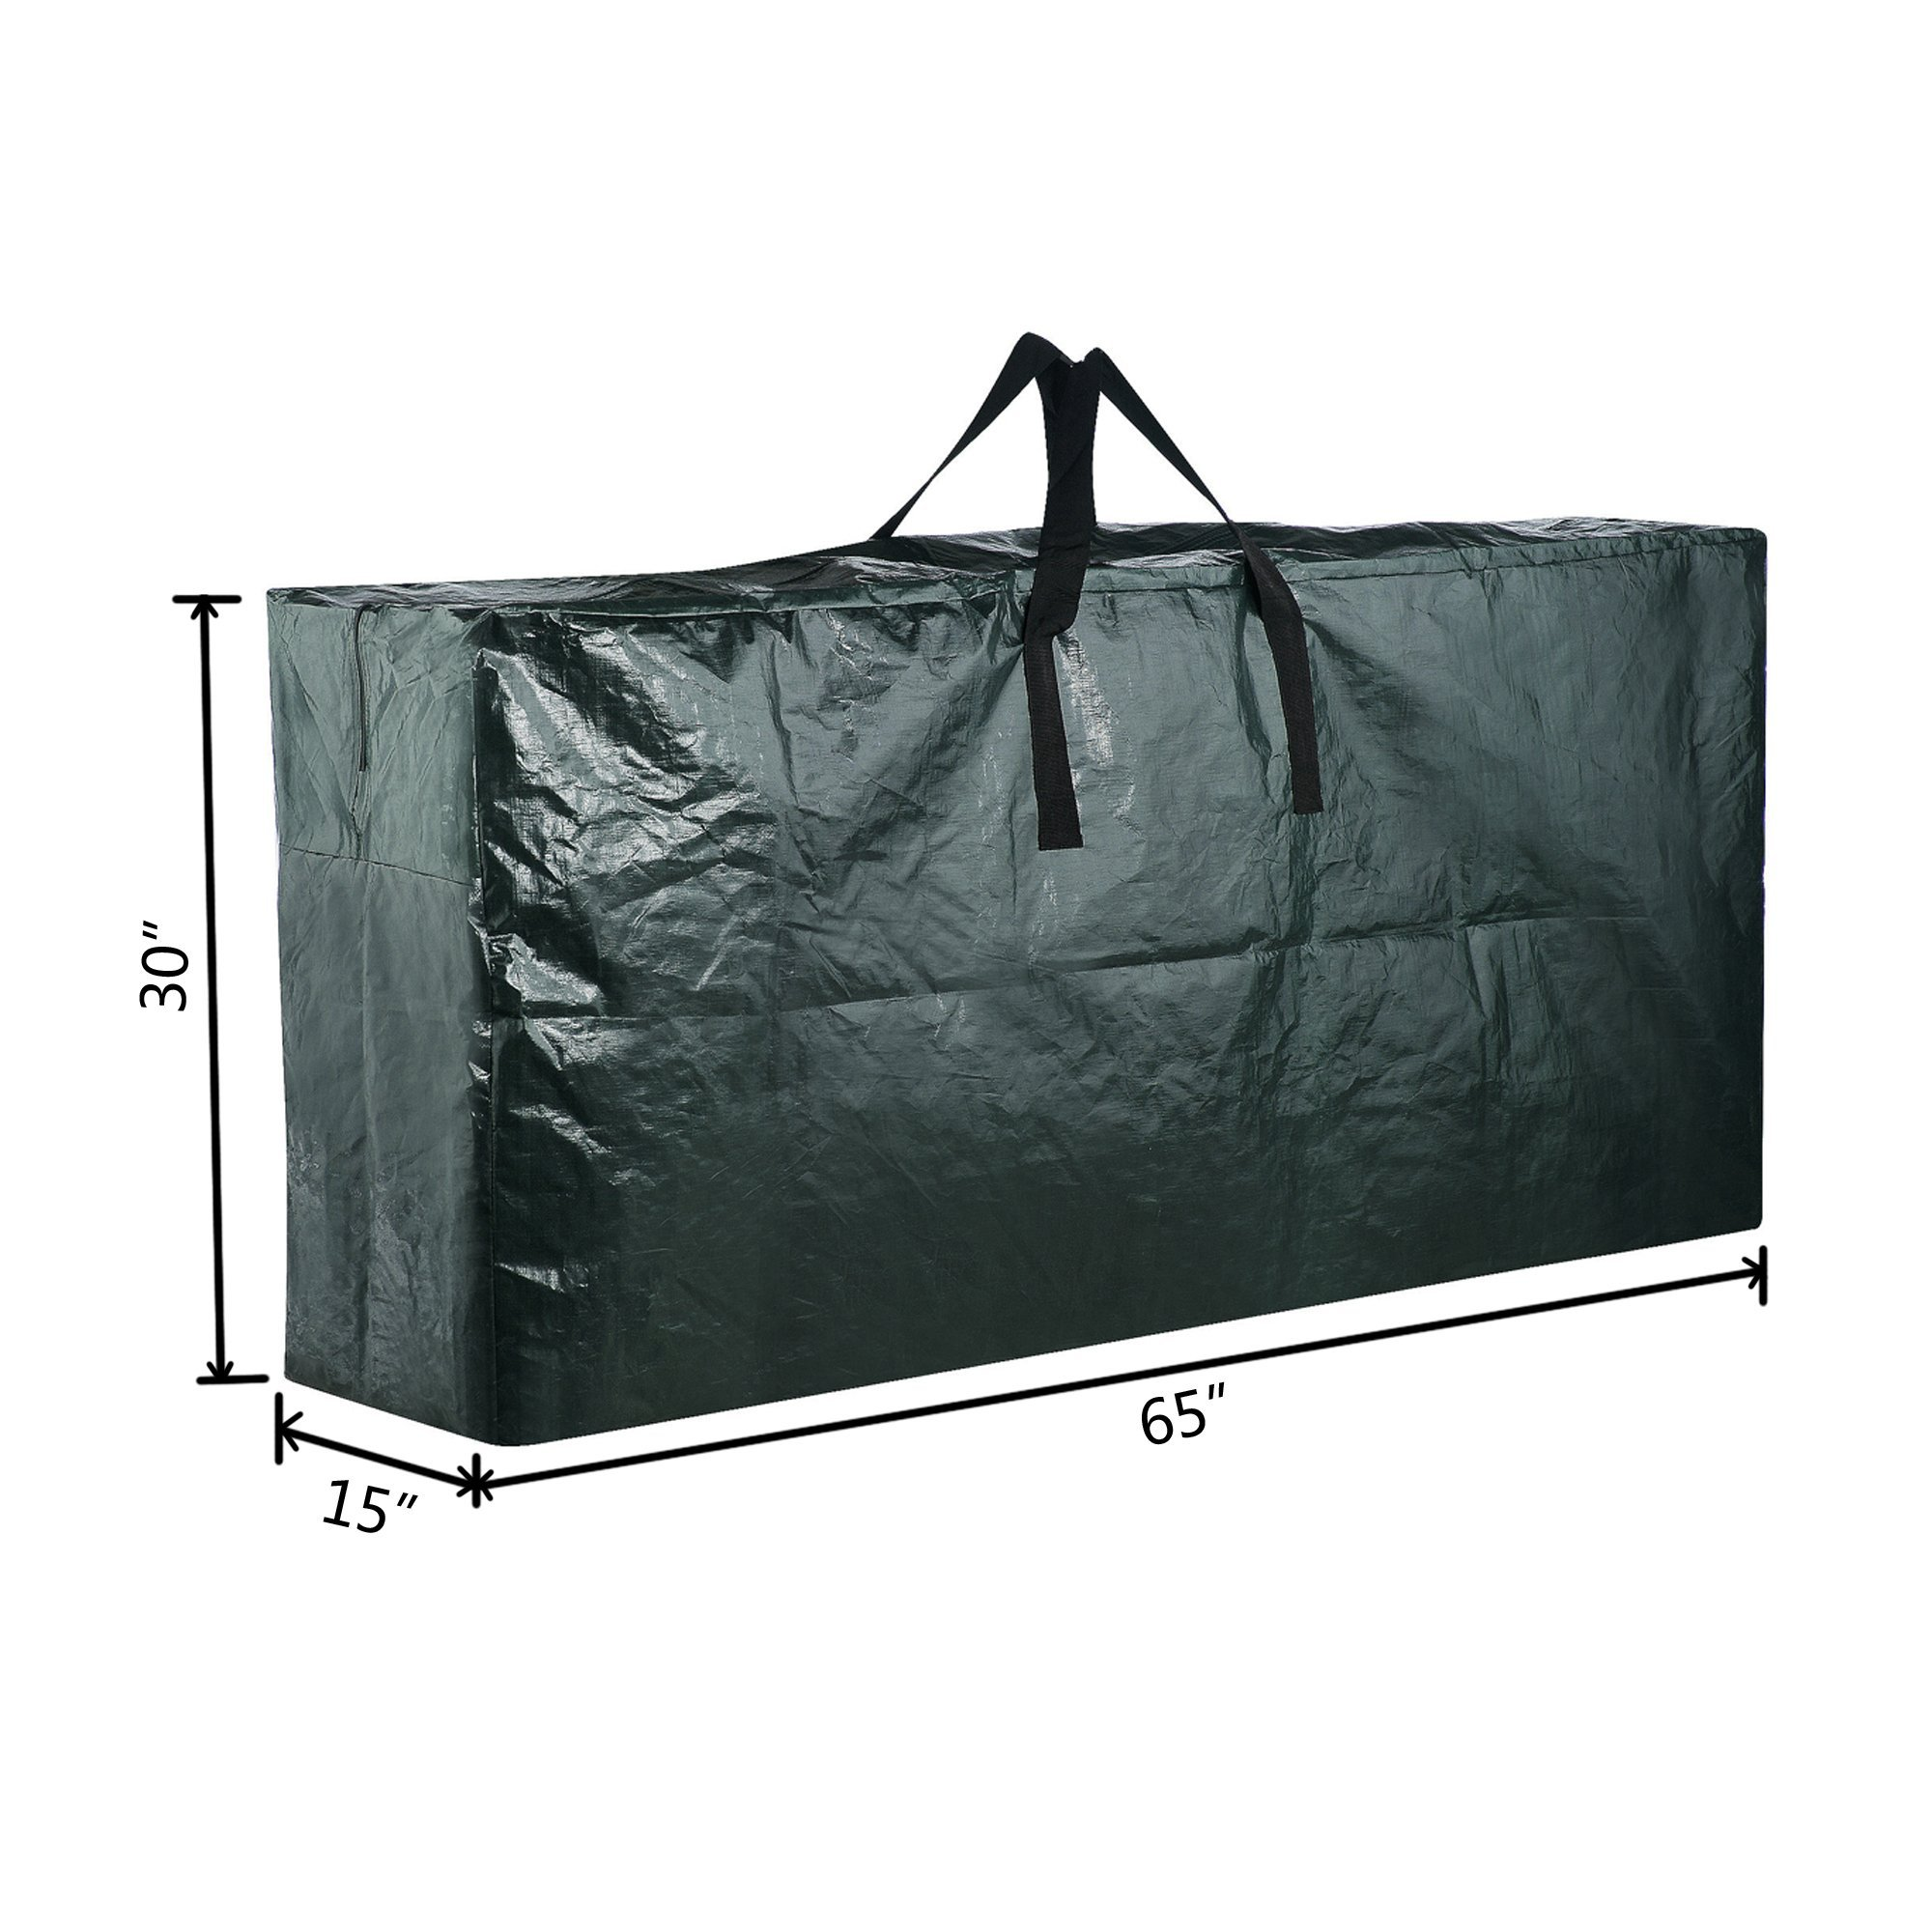 Elf Stor Premium Green Christmas Tree Bag Holiday Extra Large for up to 9' Tree Storage by Elf Stor (Image #2)